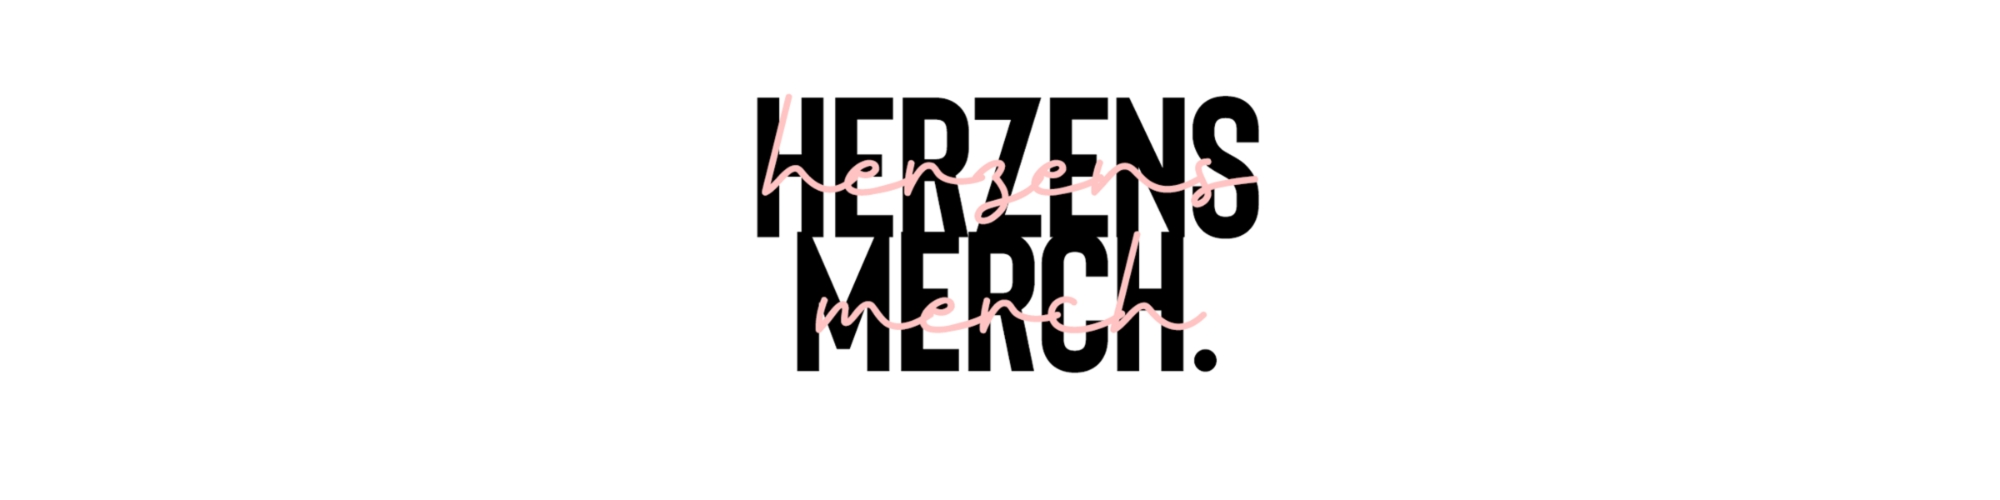 Showroom - herzensmerch